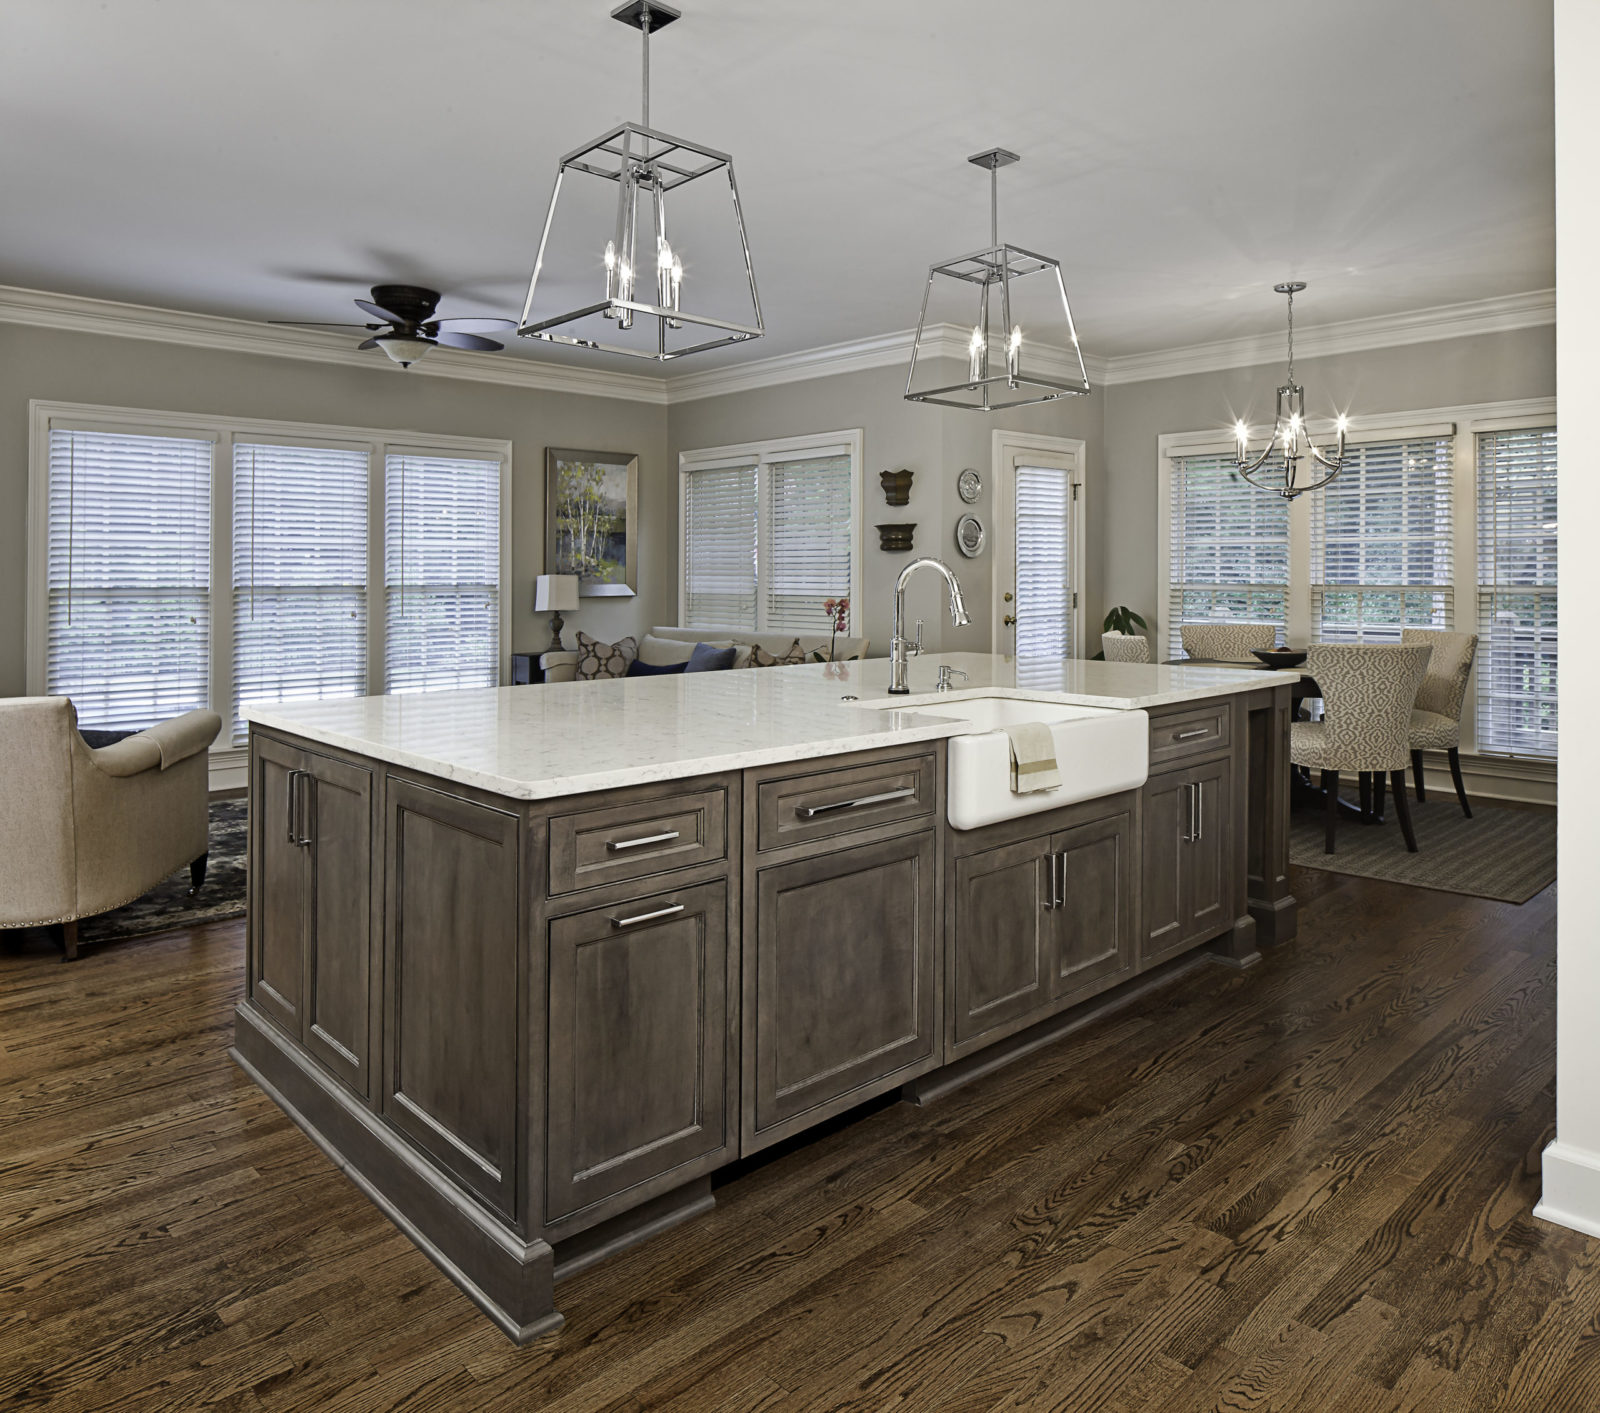 designer-kitchen-gray-stained-kitchen-island